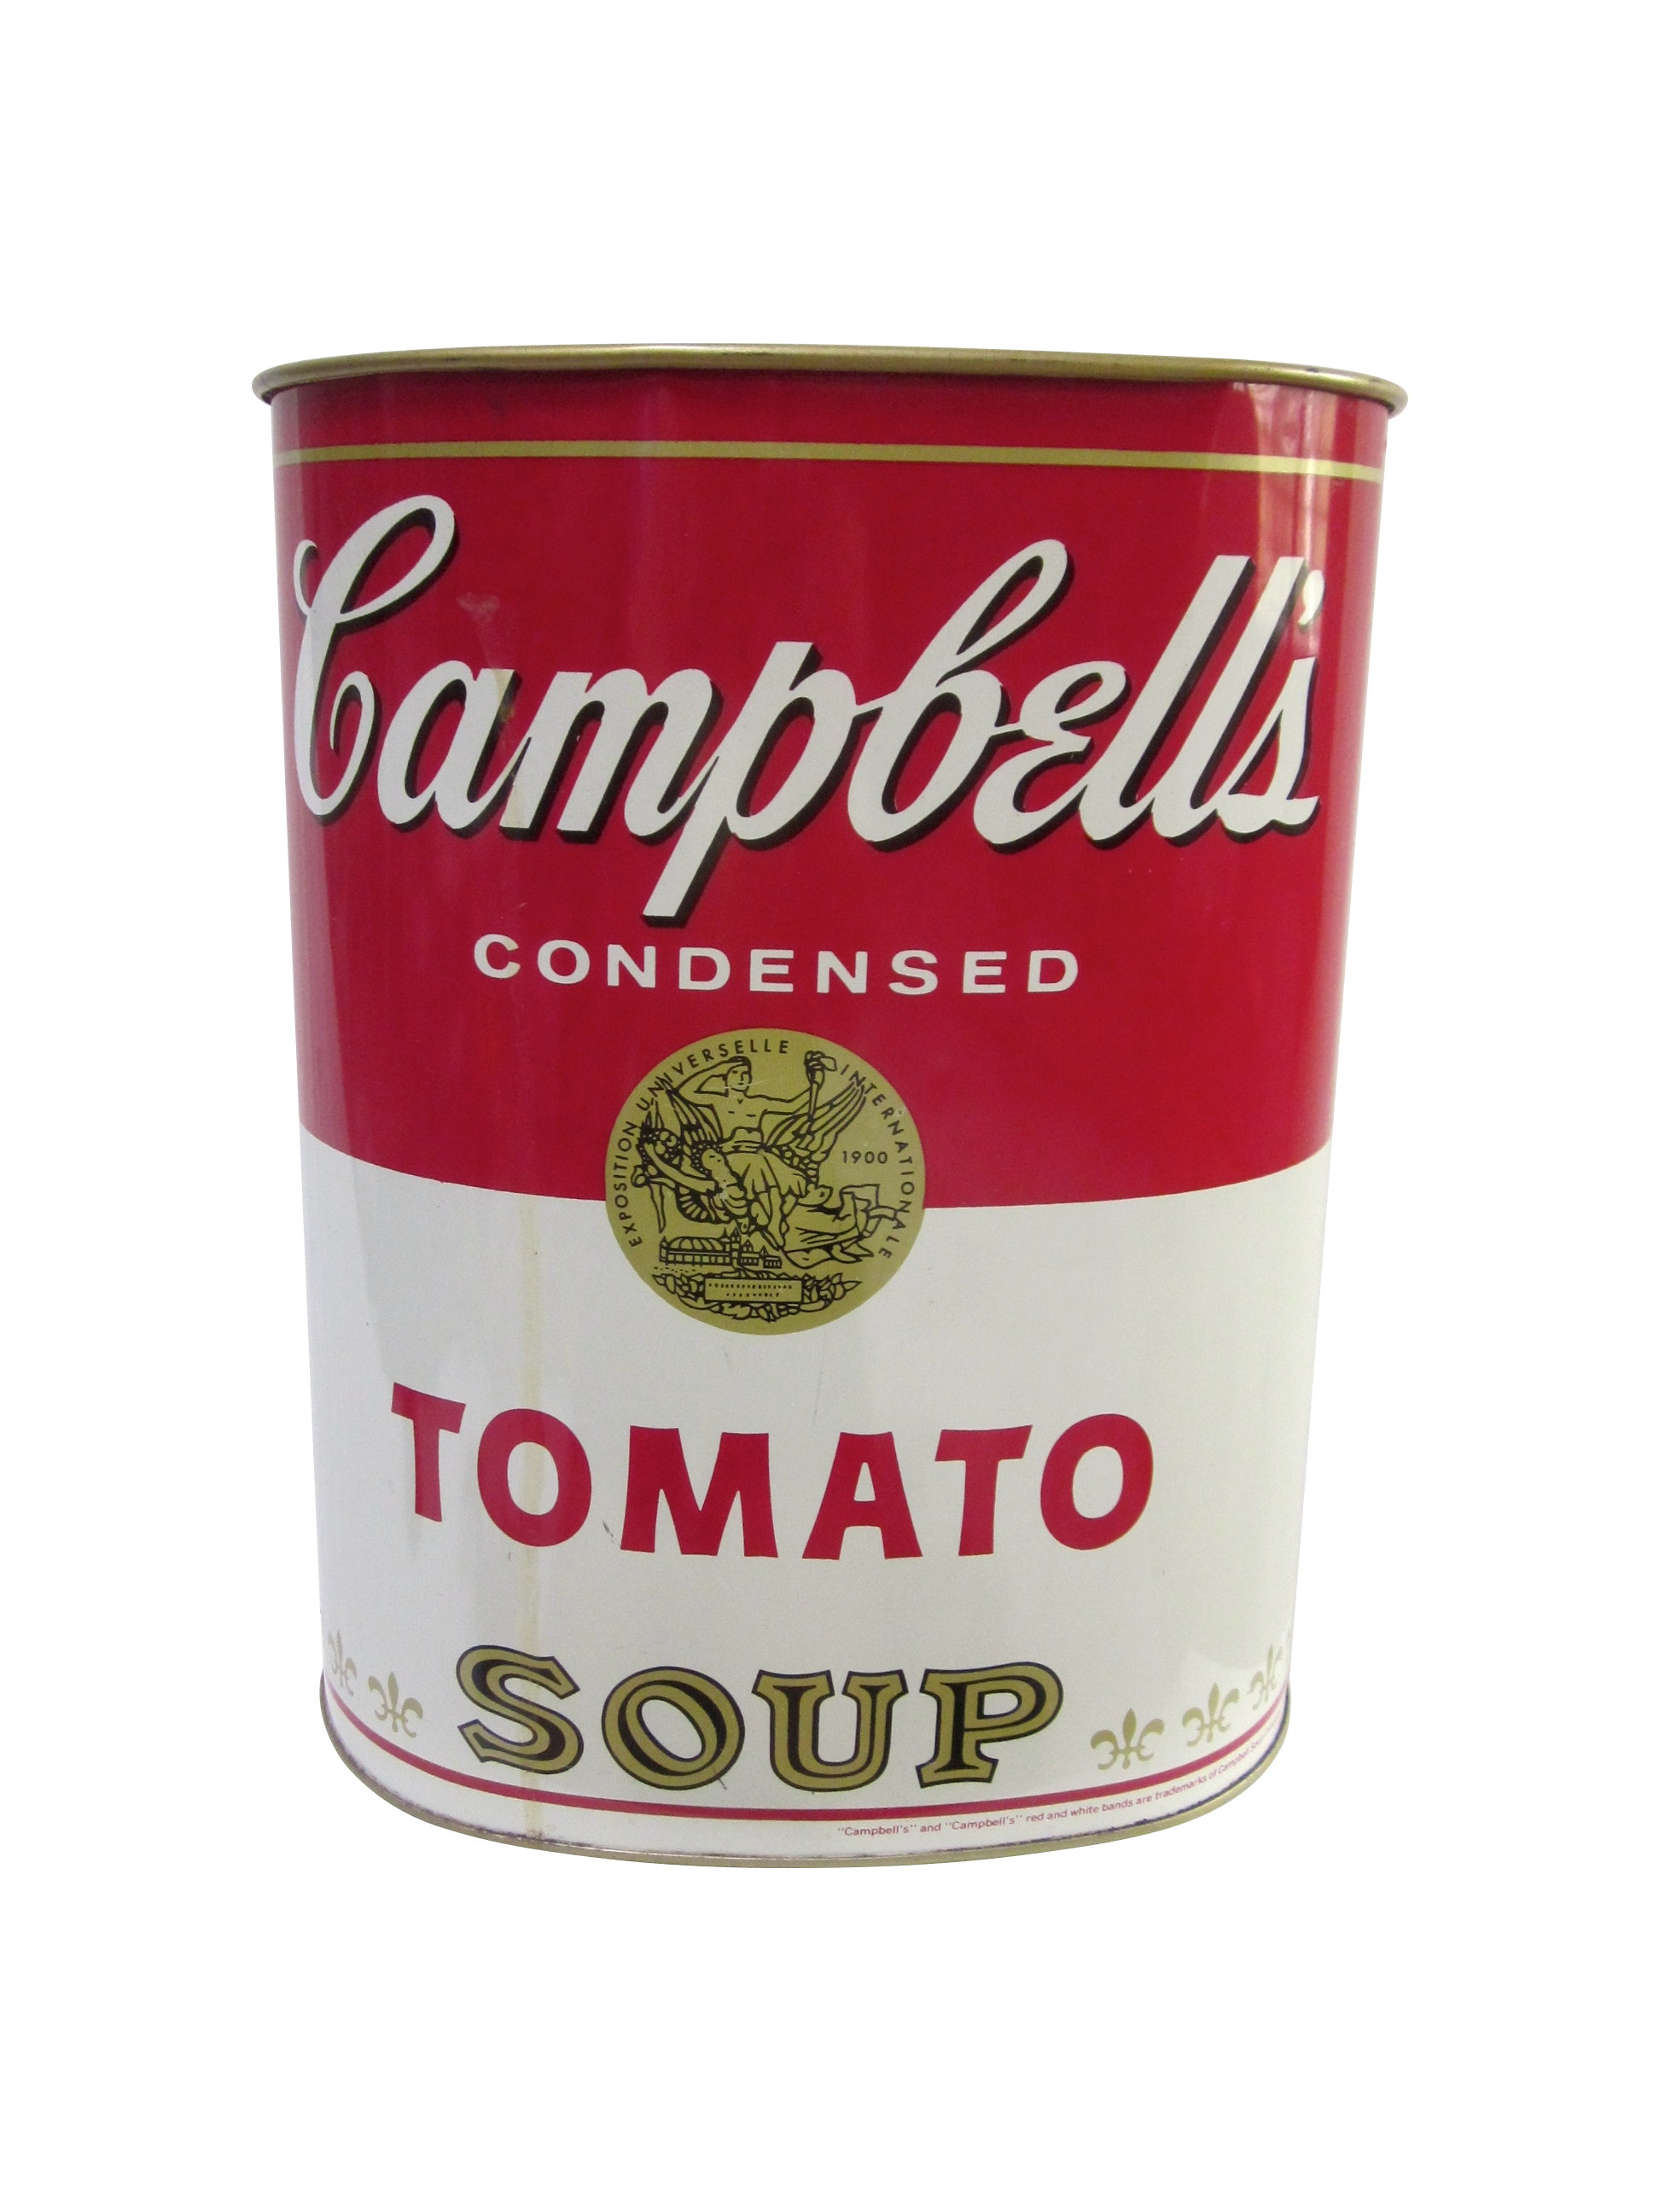 Campbells soup png. Campbell s cans tomato